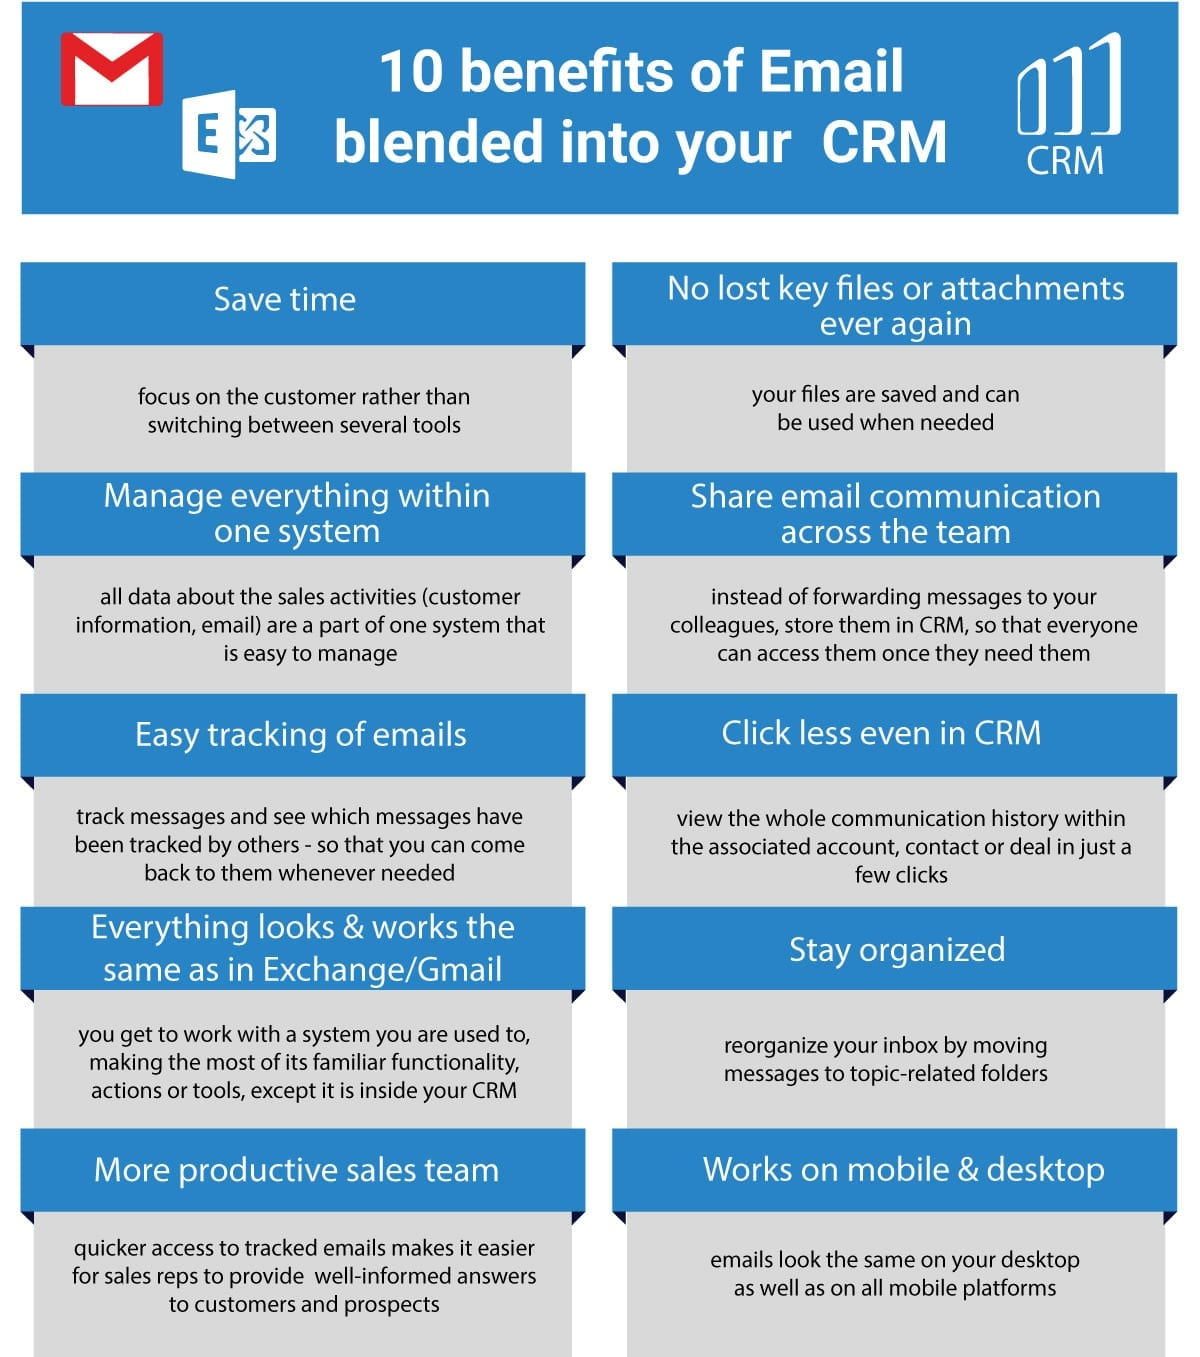 10 benefits of email in resco crm